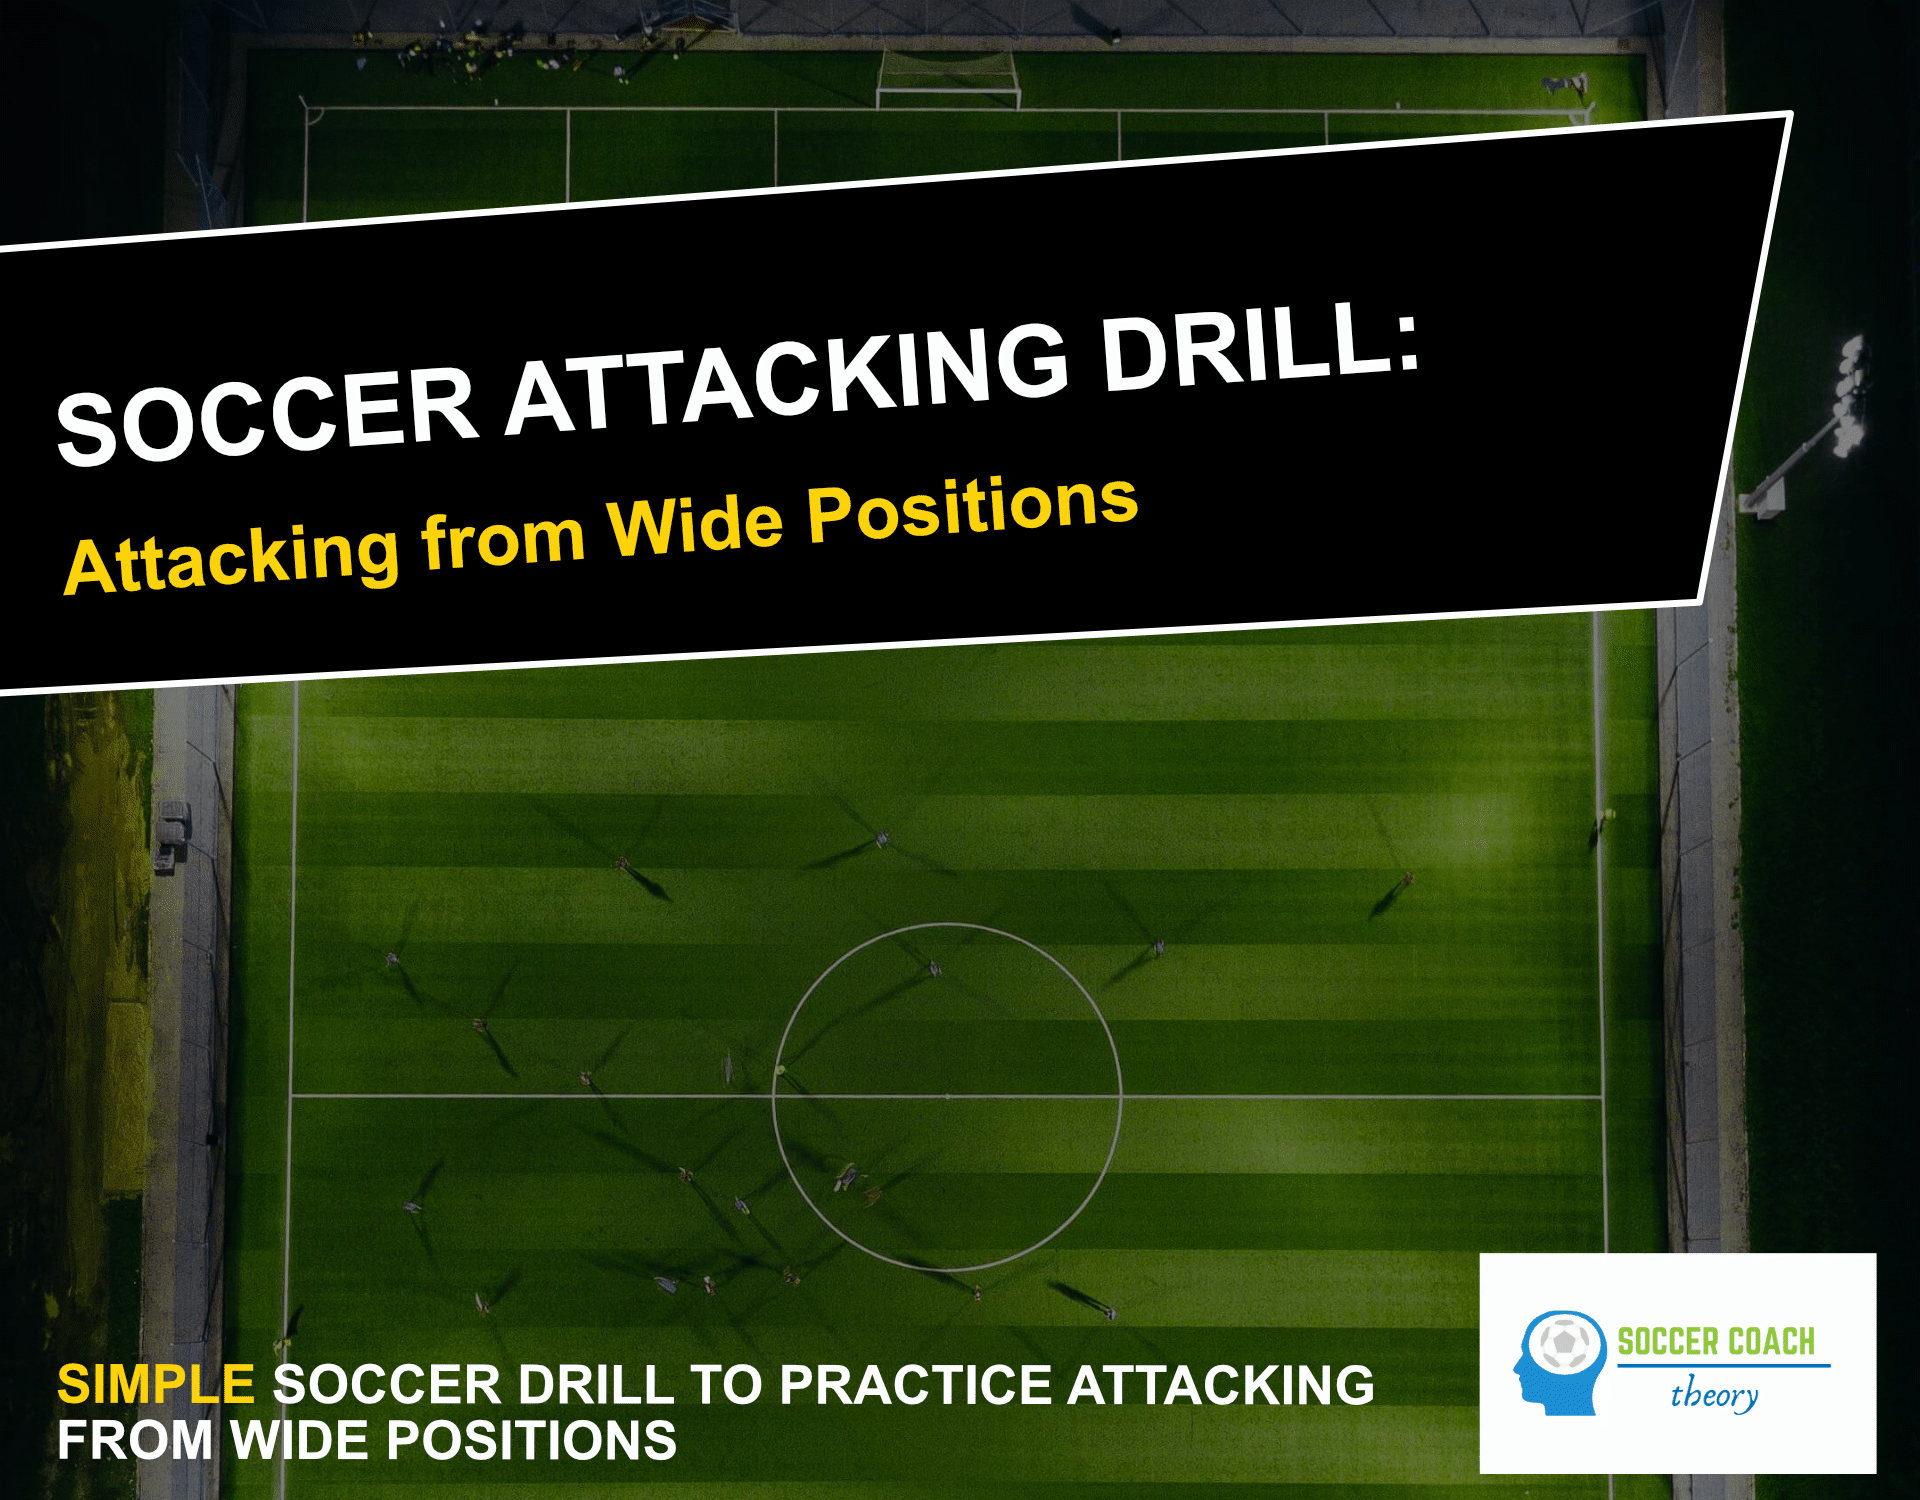 Soccer drill attacking from wide positions